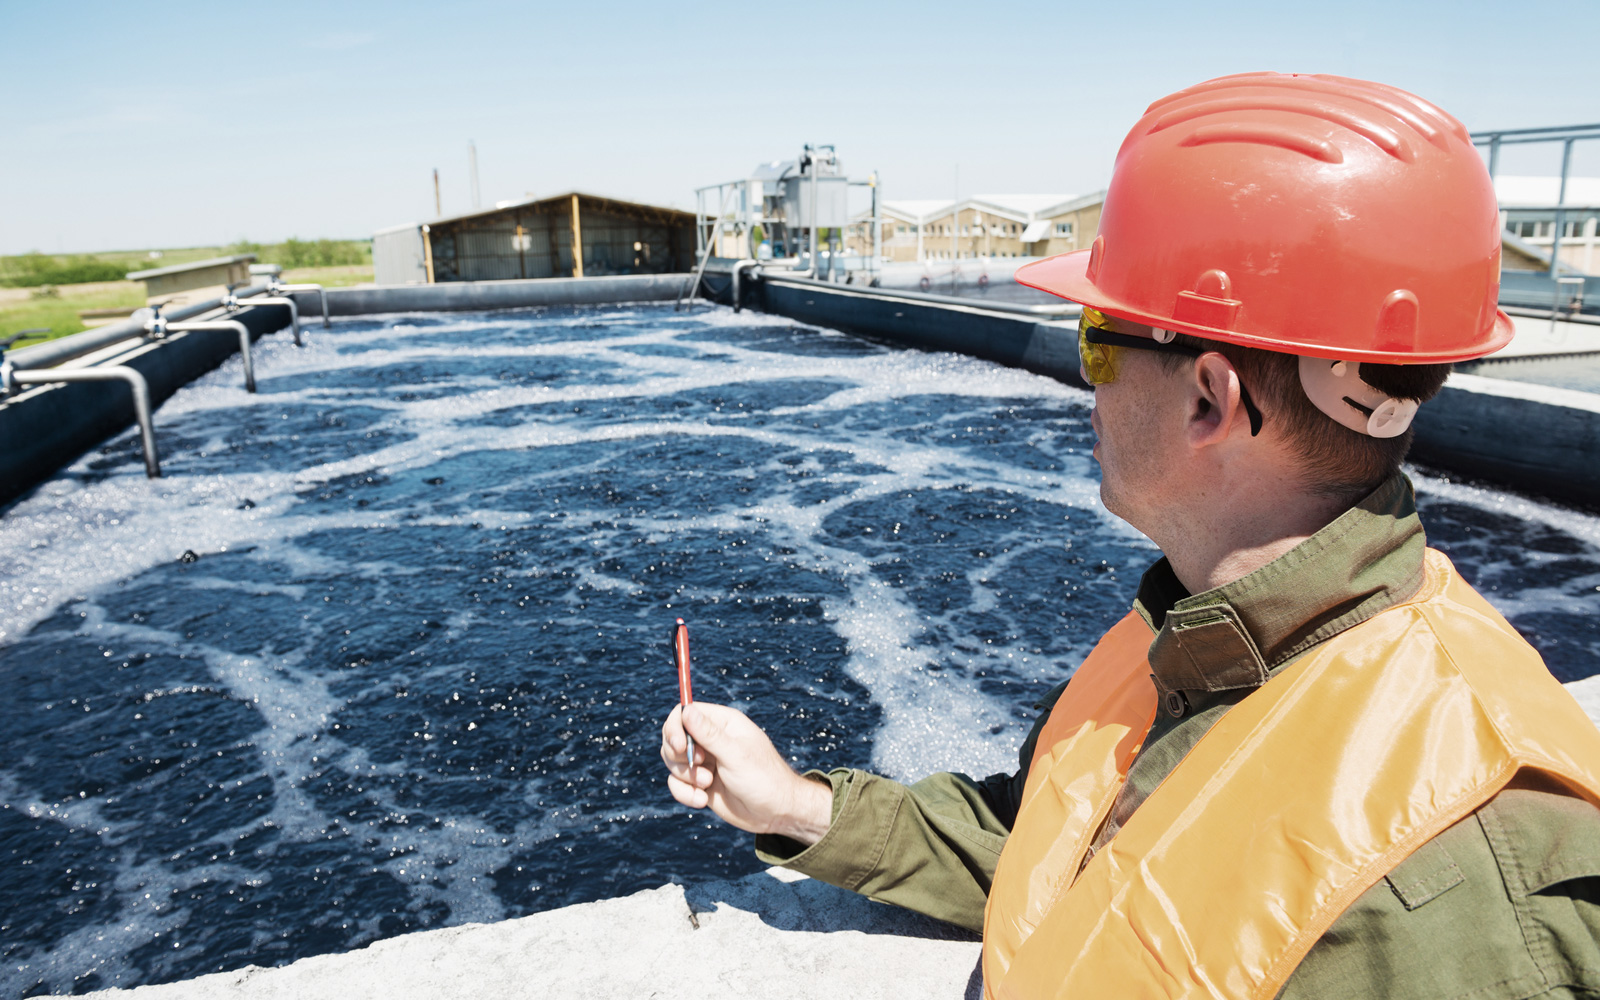 Man in hard hat and safety glasses looking at water in a wastewater treatment tank.